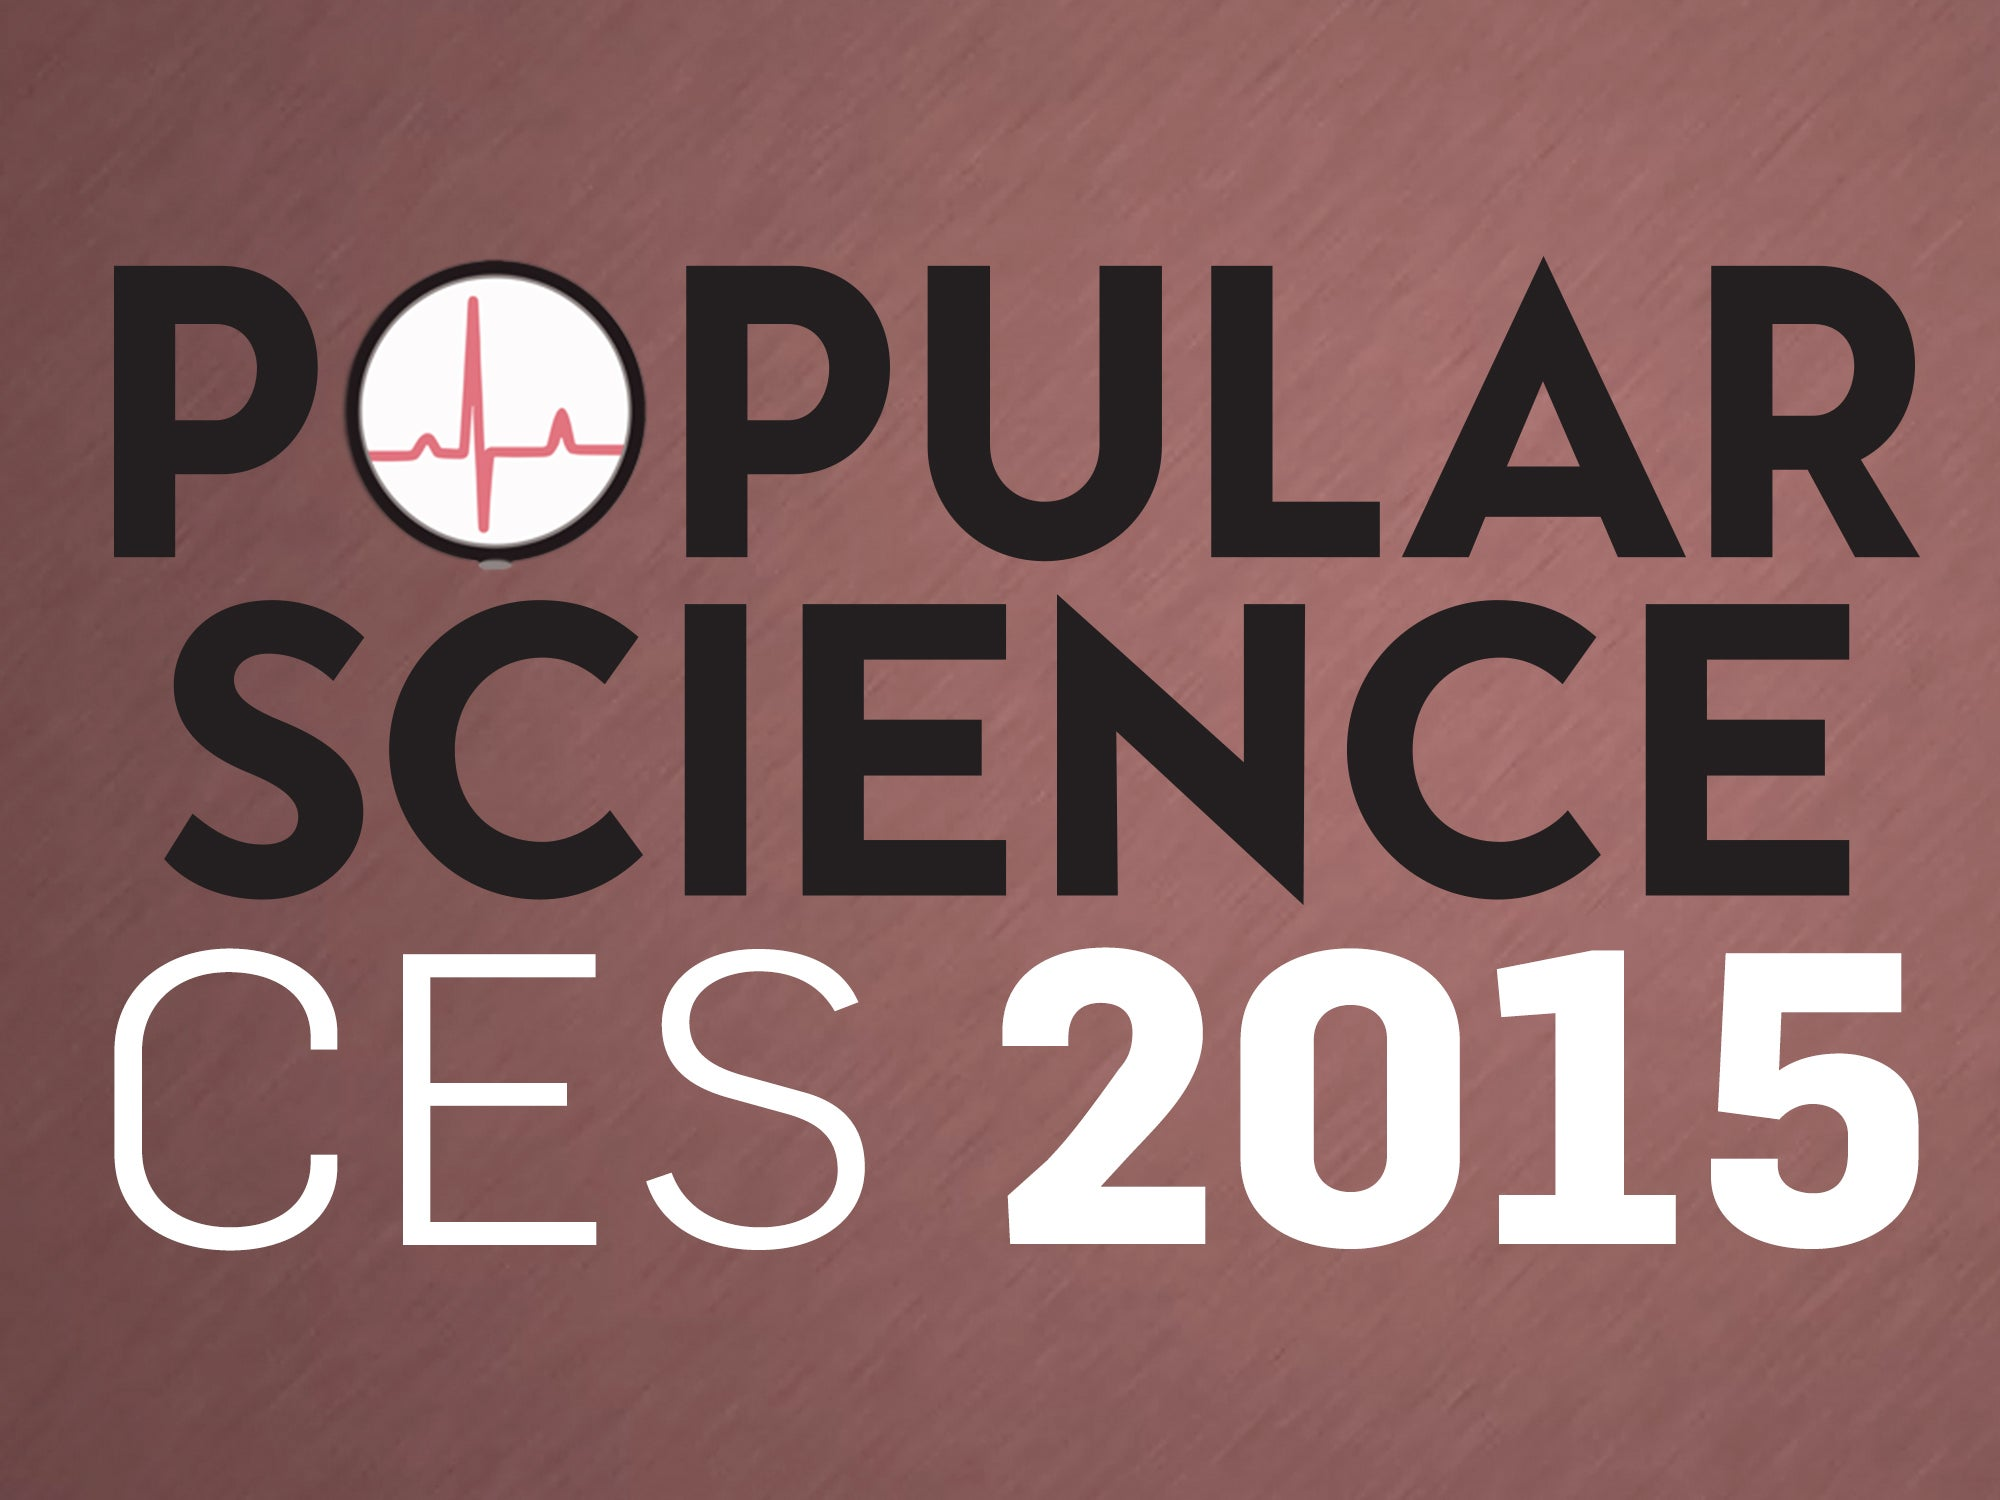 Popular Science consumer electronics show 2015 coverage logo